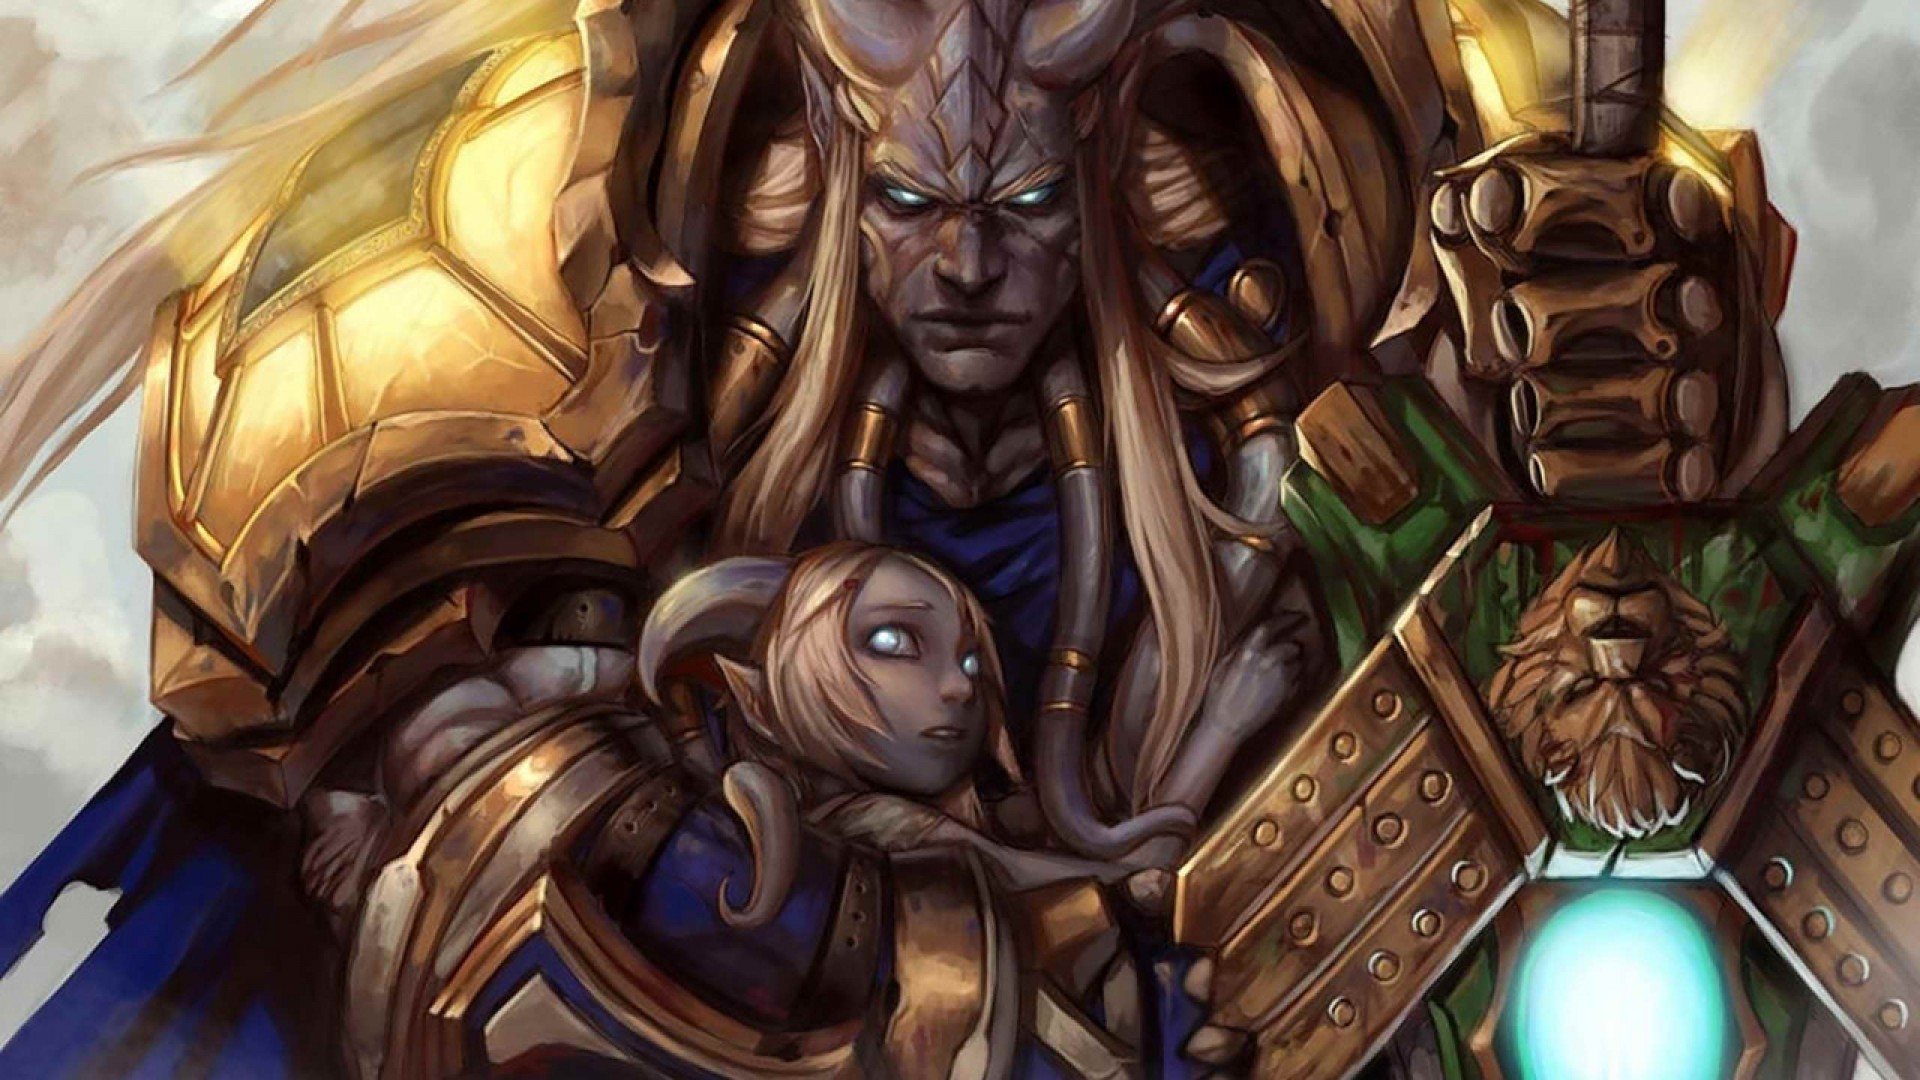 Res: 1920x1080, World Of Warcraft Paladin Wallpaper Phone On Wallpaper Hd 1920 x 1080 px  623.08 KB warlords